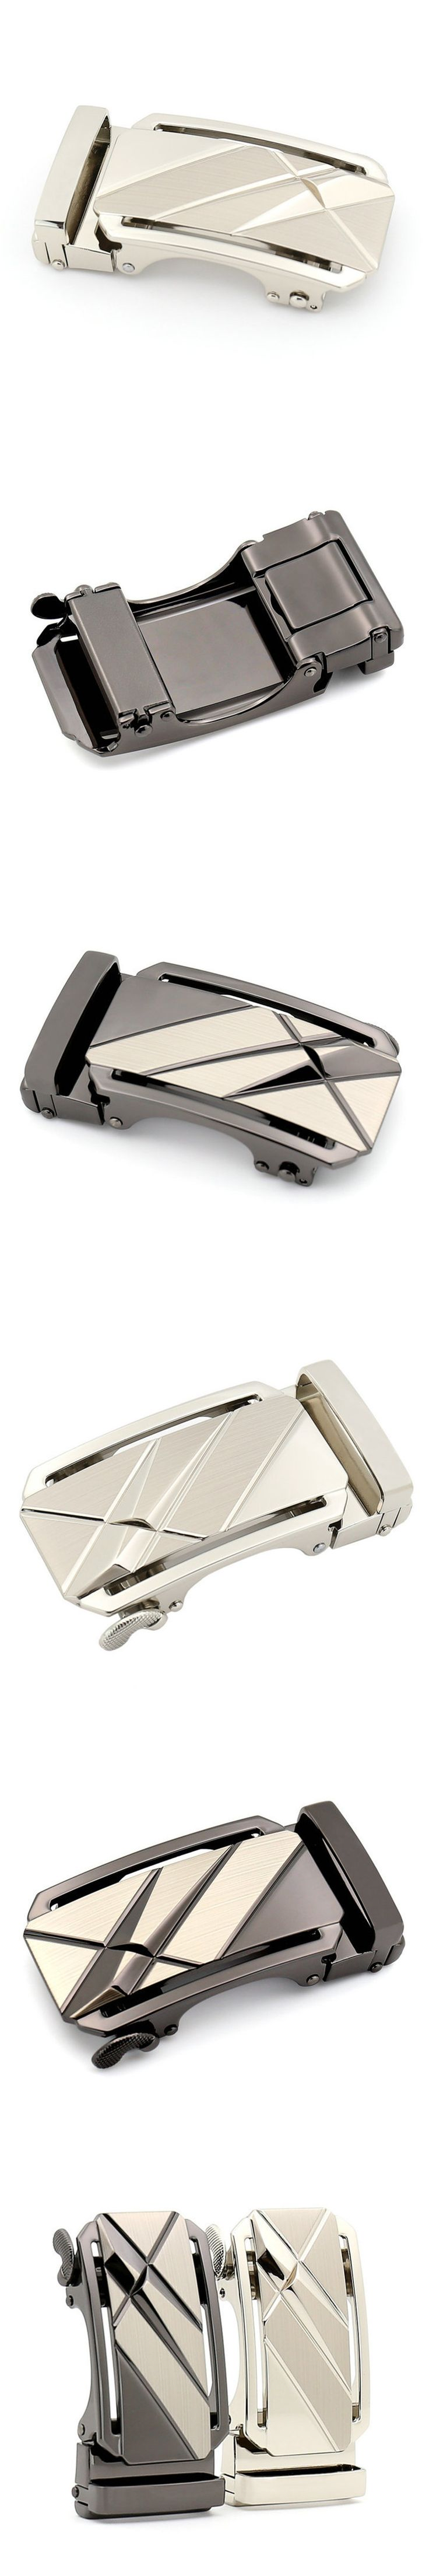 LannyQveen 2017 new model fashoin belt buckle automatic buckles without strap factory wholesale free shipping